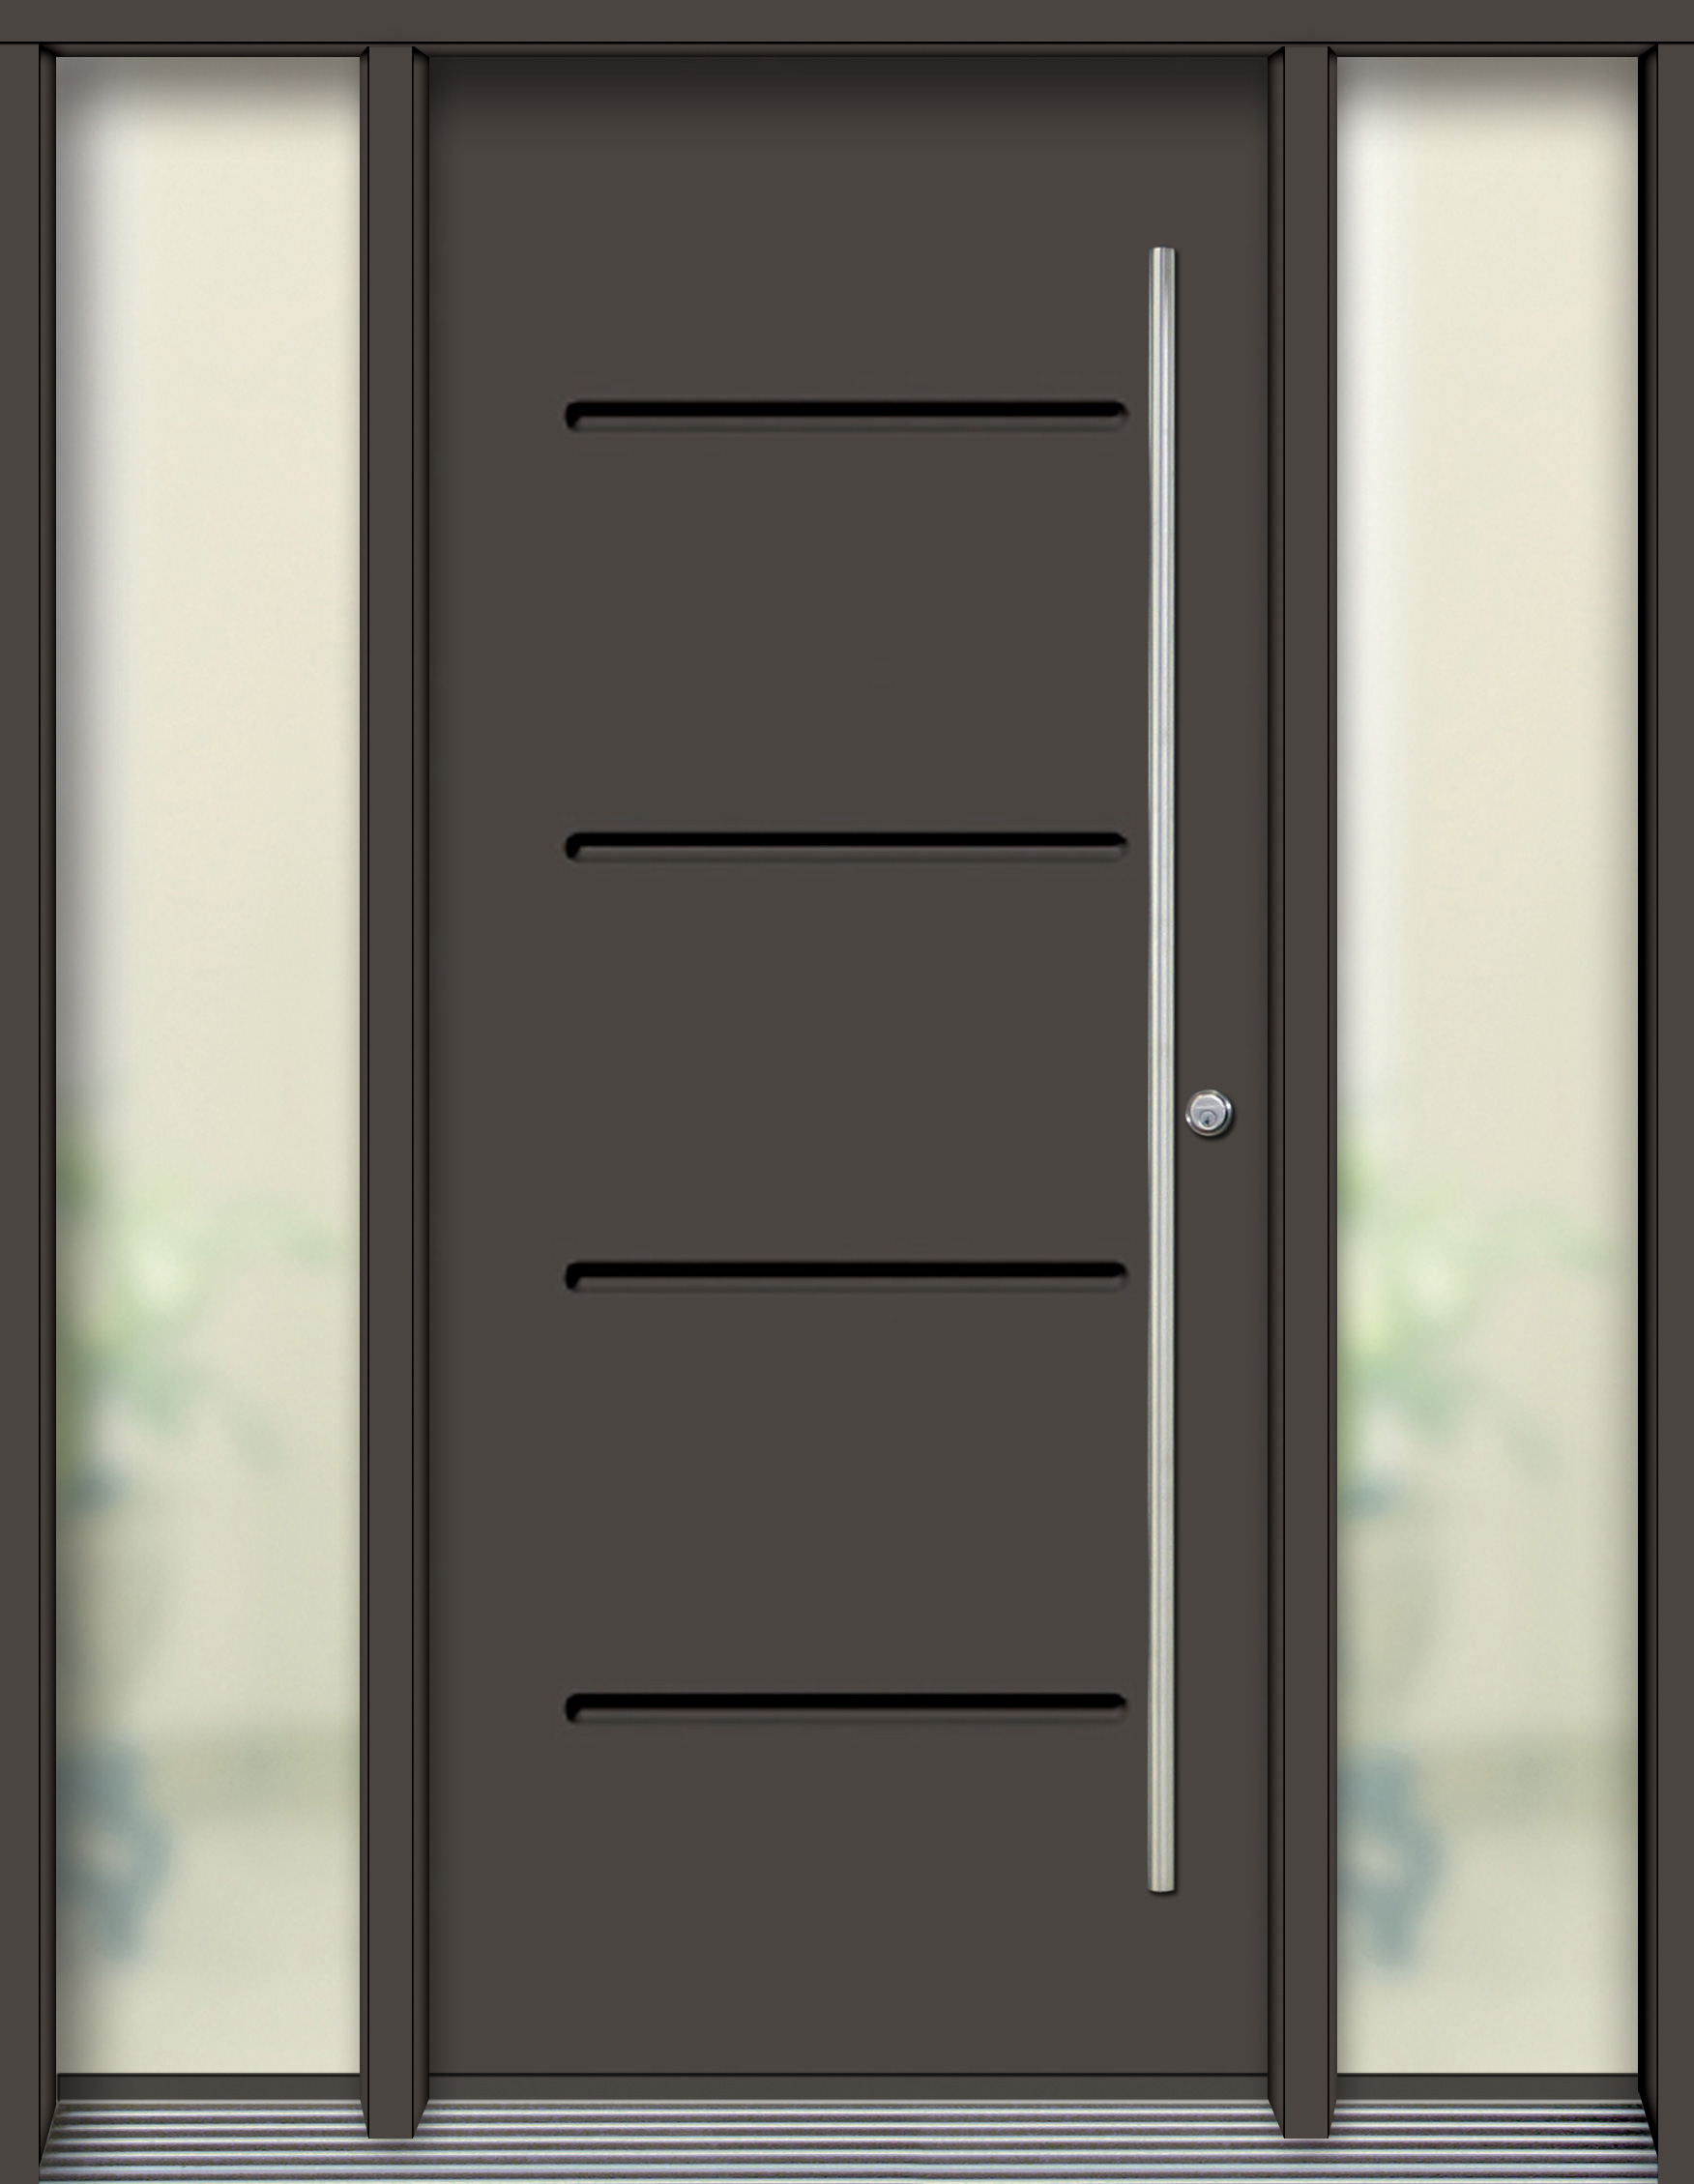 Vog Contemporary Door Urbania 2 Pvl79 Iron Ore ⋆ Portatec